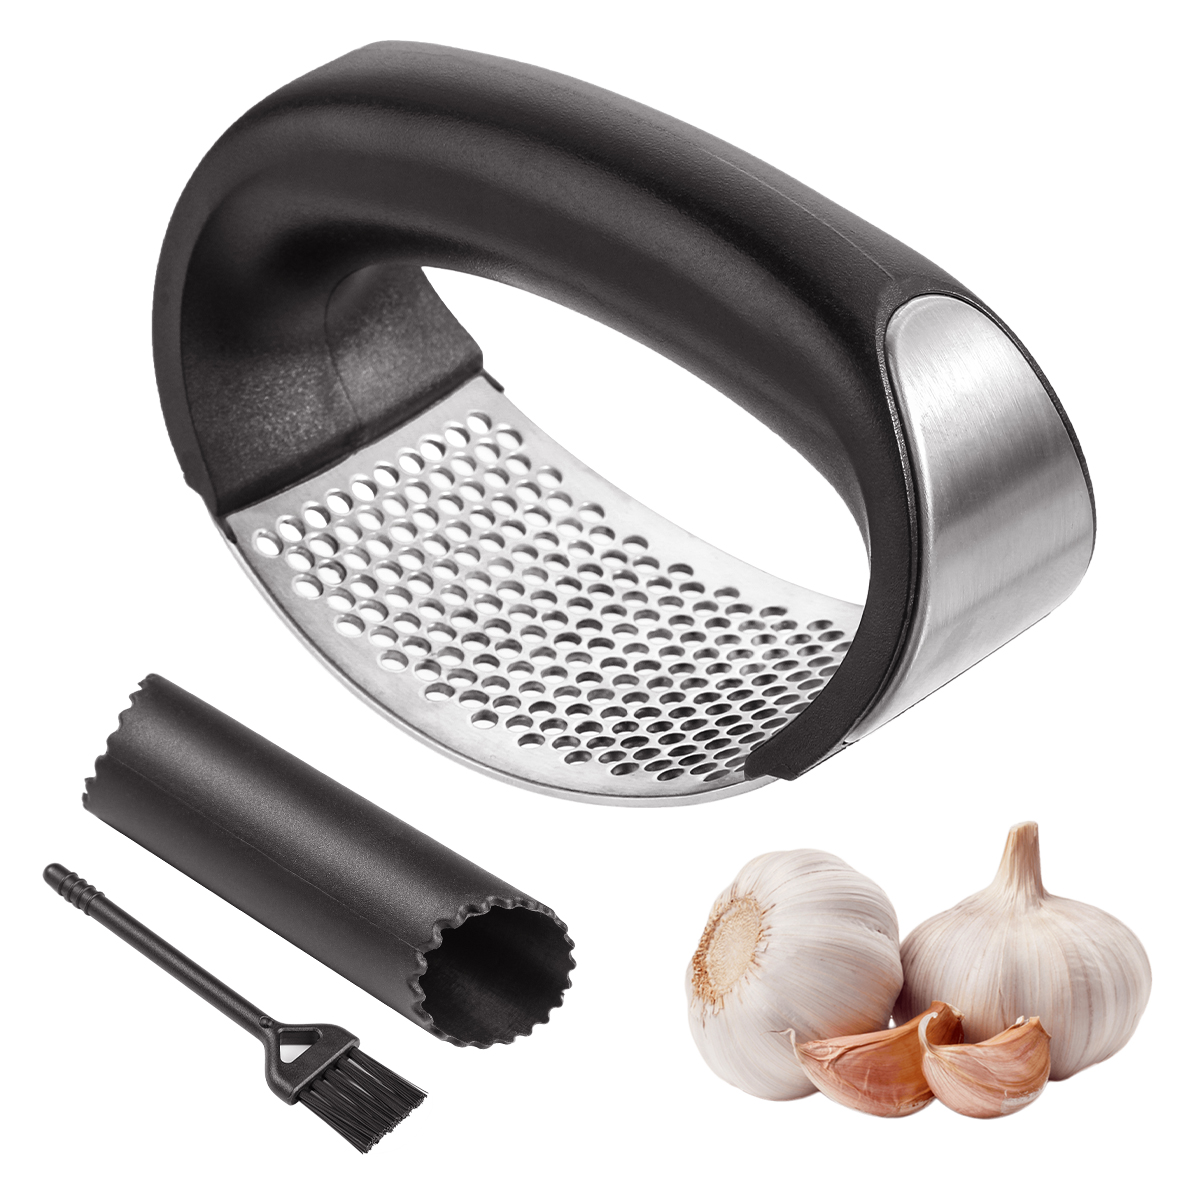 Garlic Press Rocker Stainless Steel Ginger Crusher Squeezer and Peeler Kitchen A